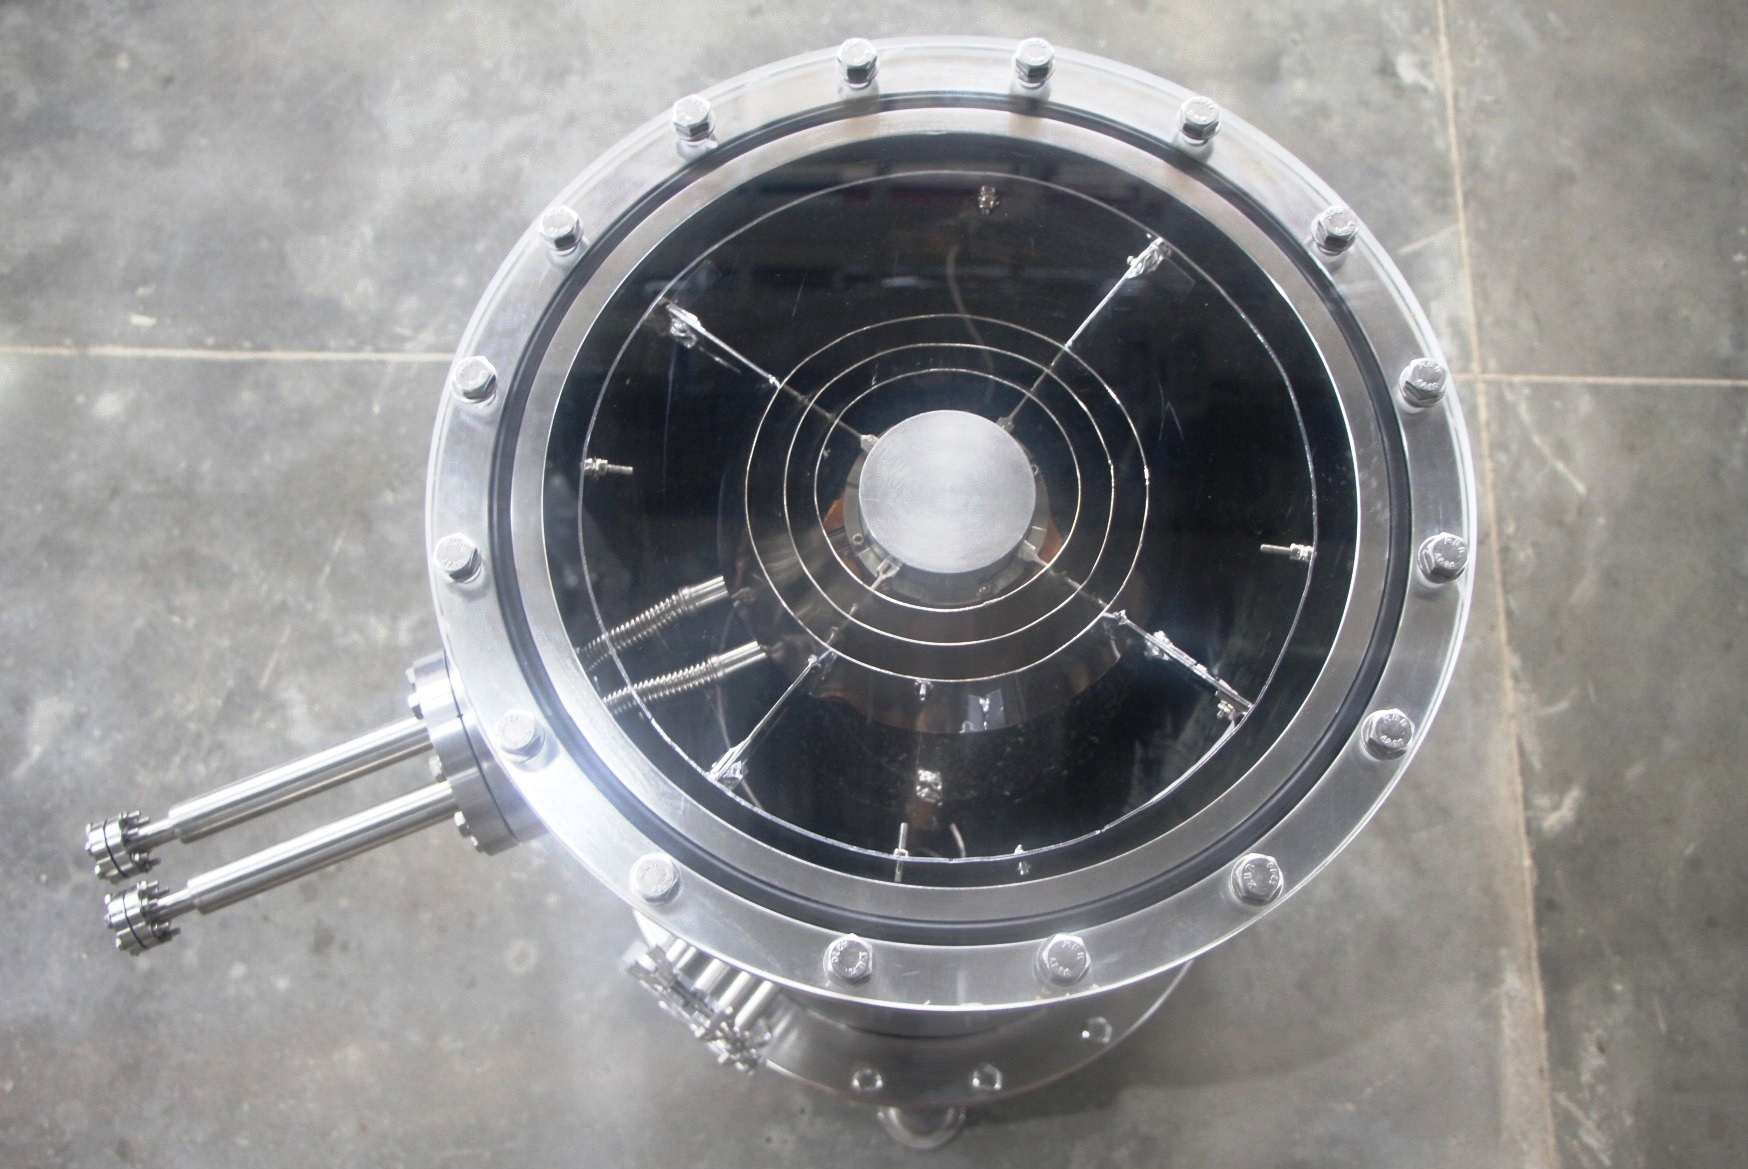 Top view of one of the cryo-pumps with 400mm opening that was delivered to SAC-ISRO.jpg